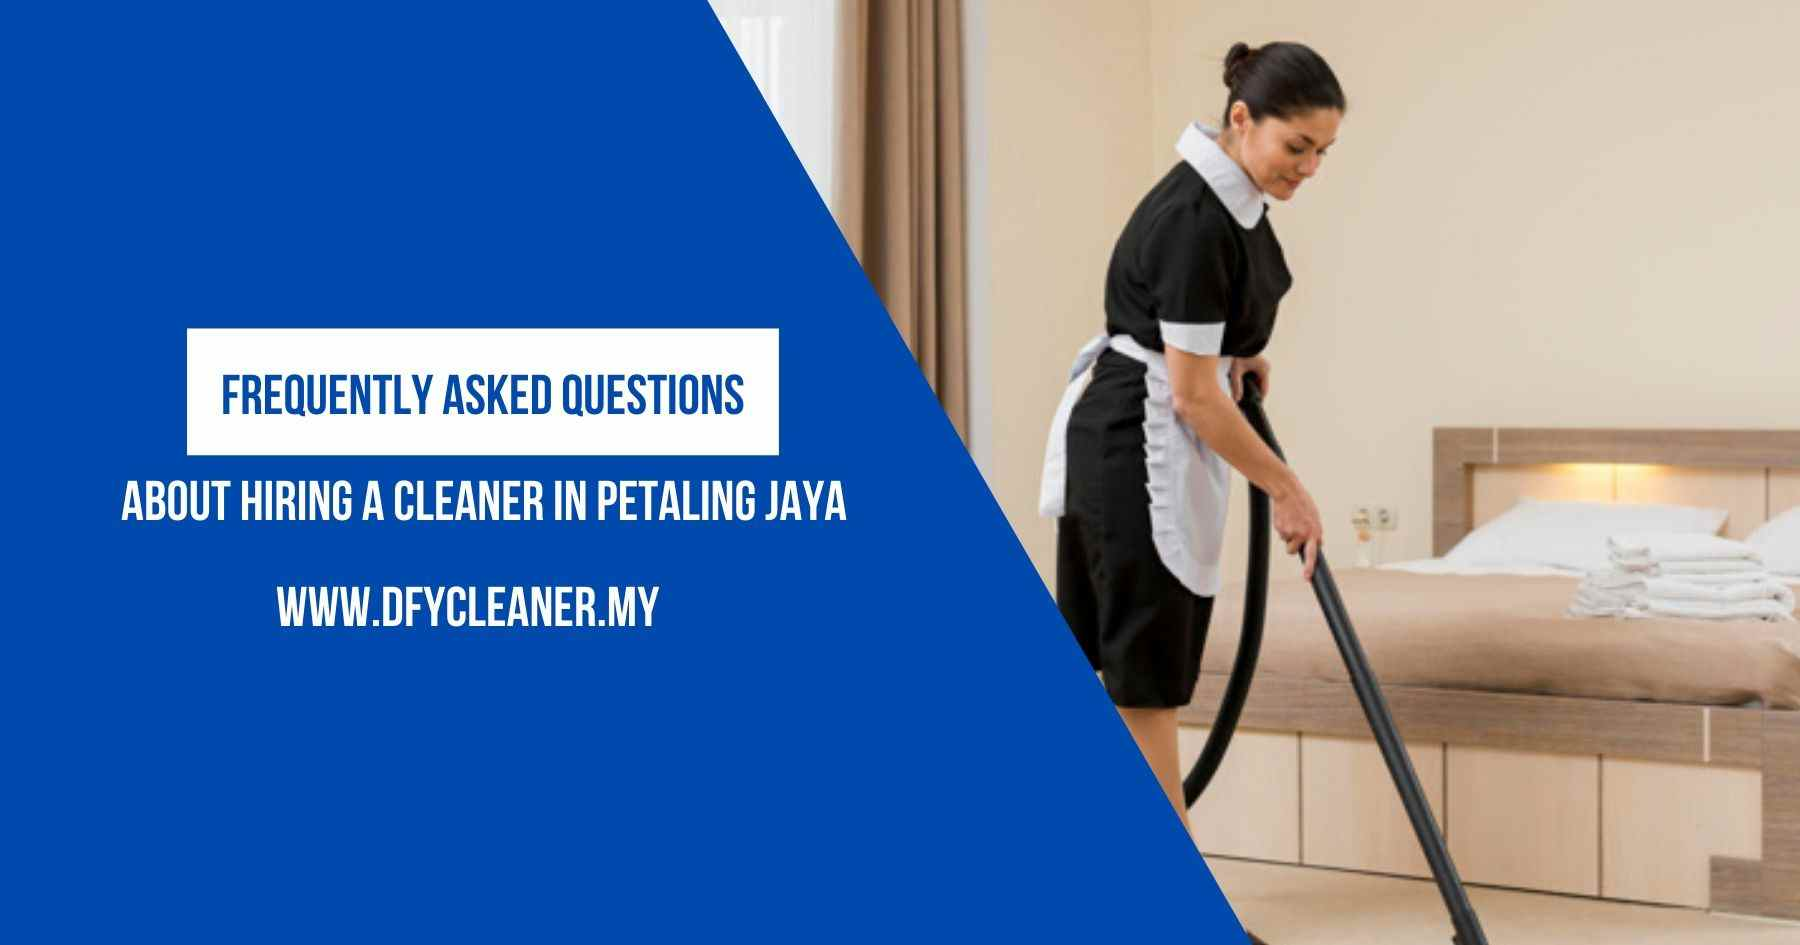 FAQ About Hiring a Cleaner in Petaling Jaya